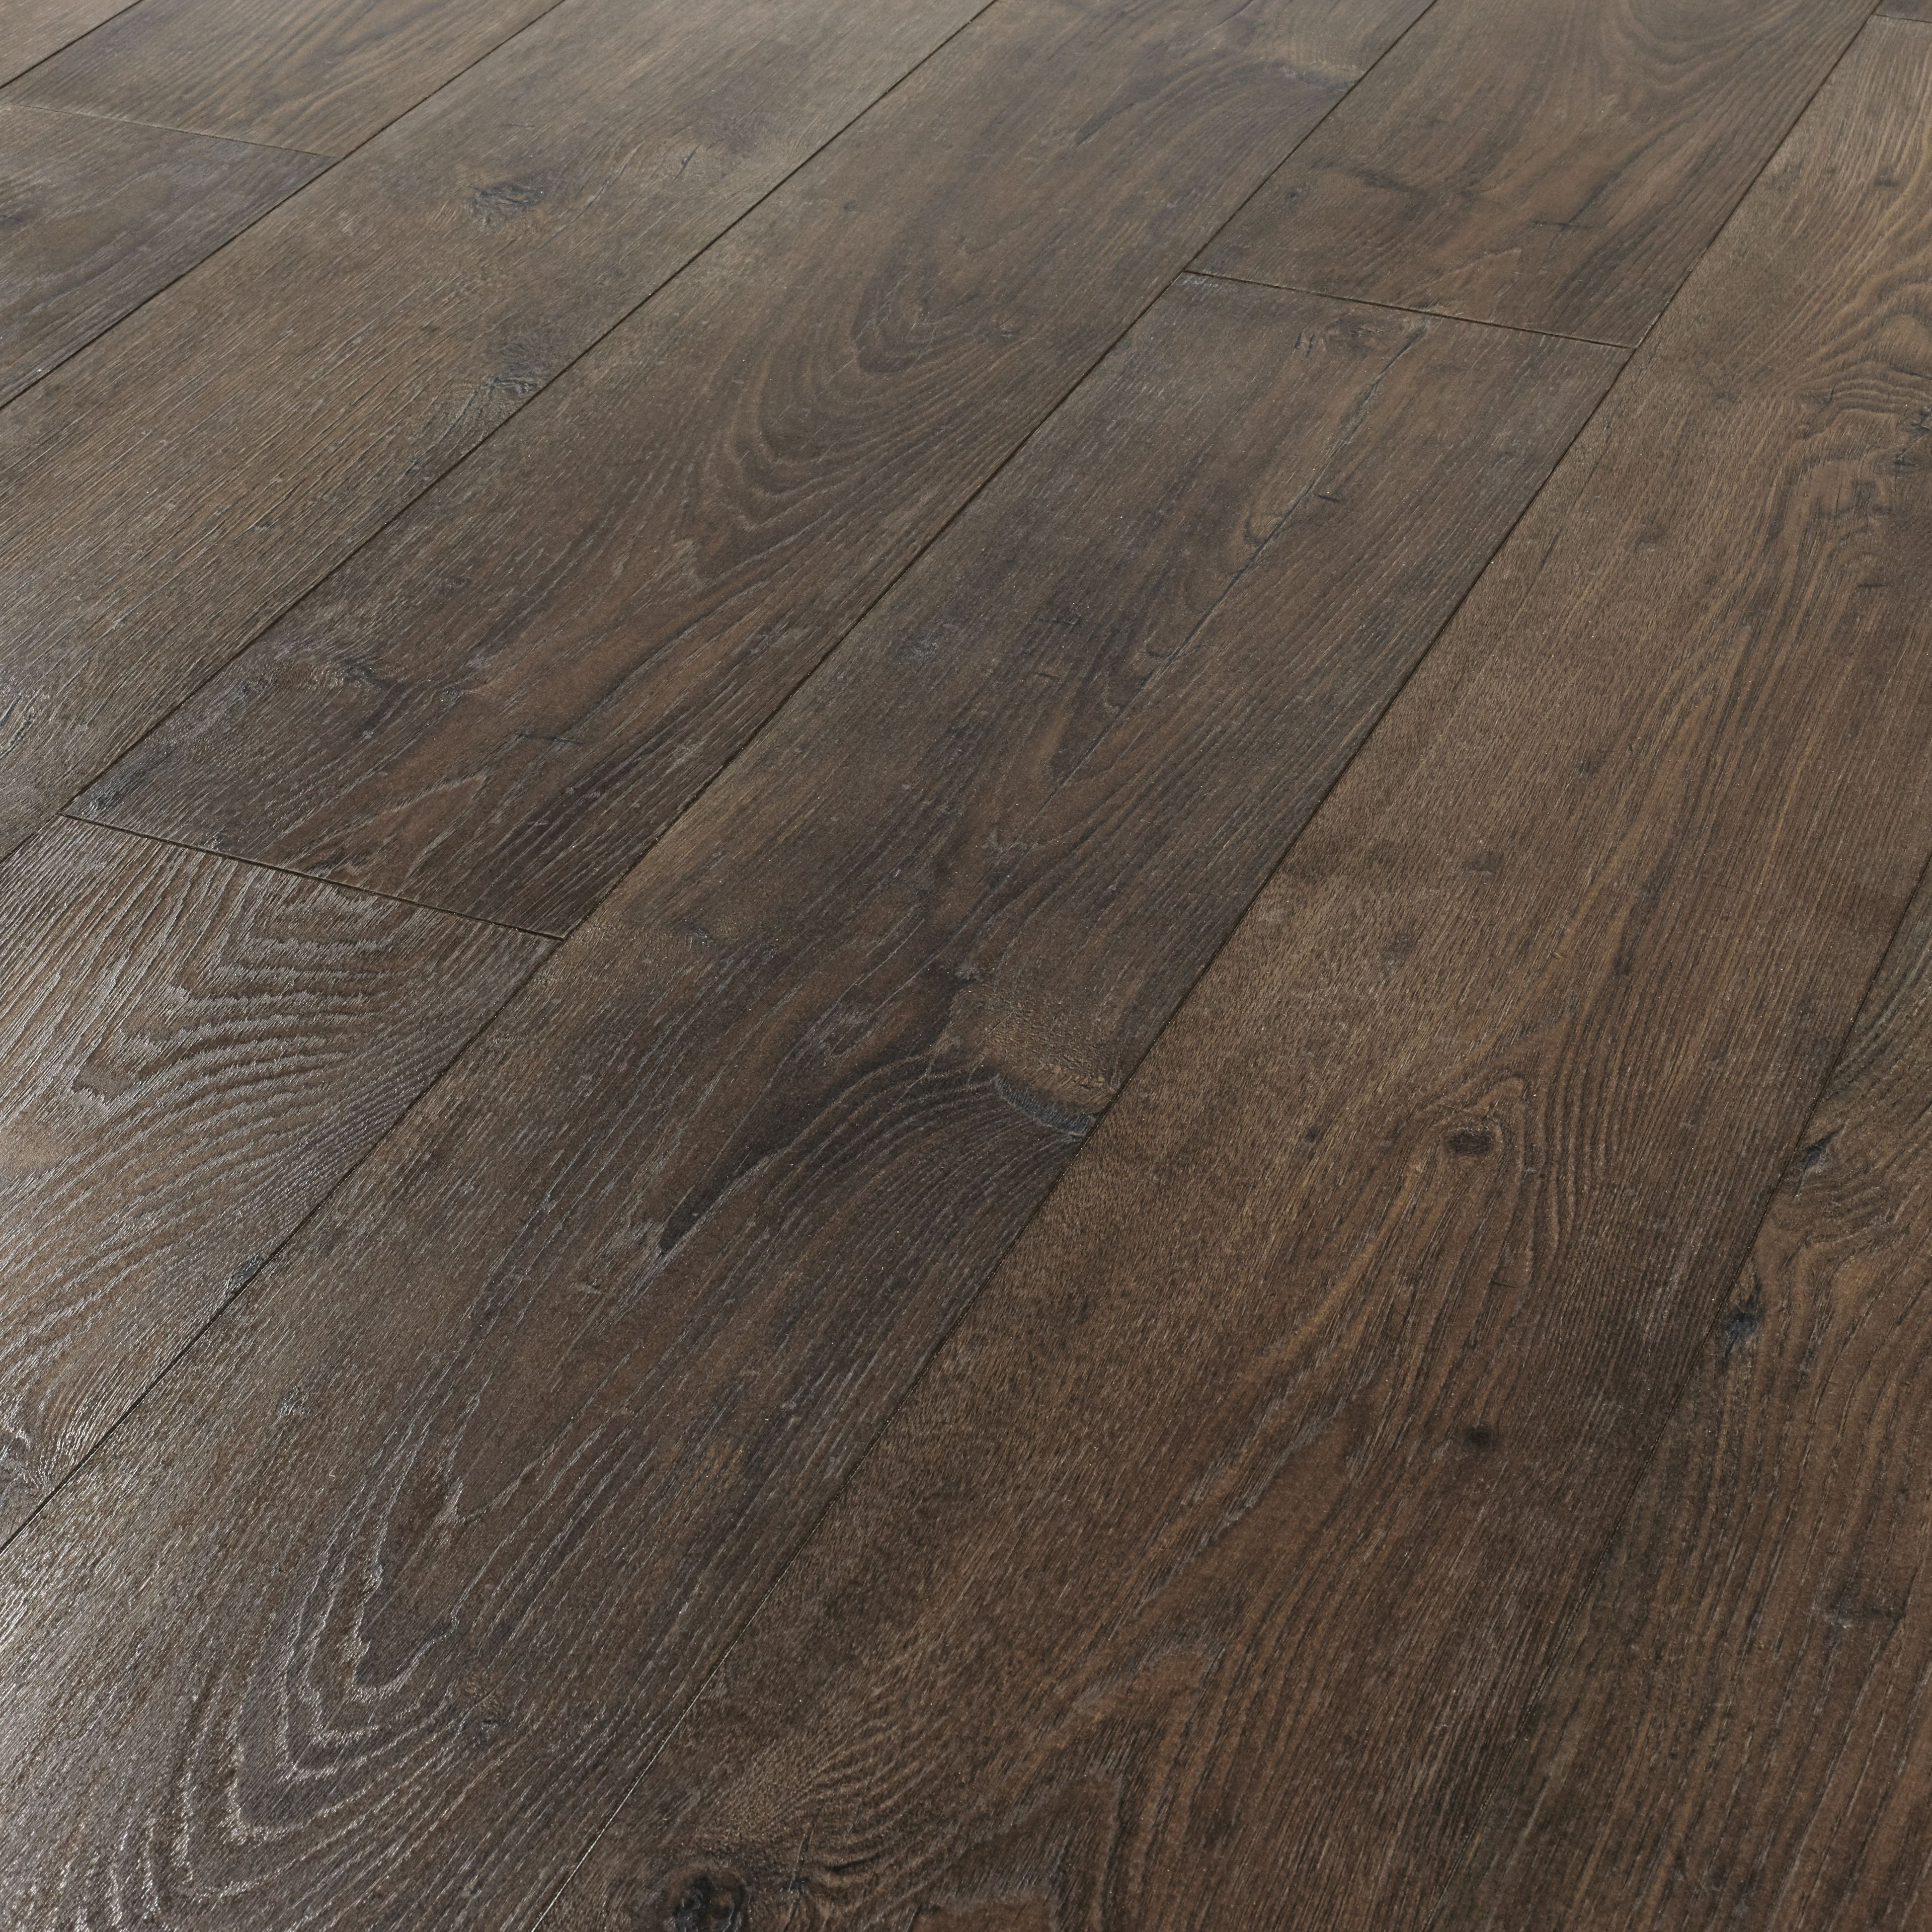 Compare cheap offers & prices of Wickes Formosa Antique Chestnut Laminate Flooring manufactured by Wickes